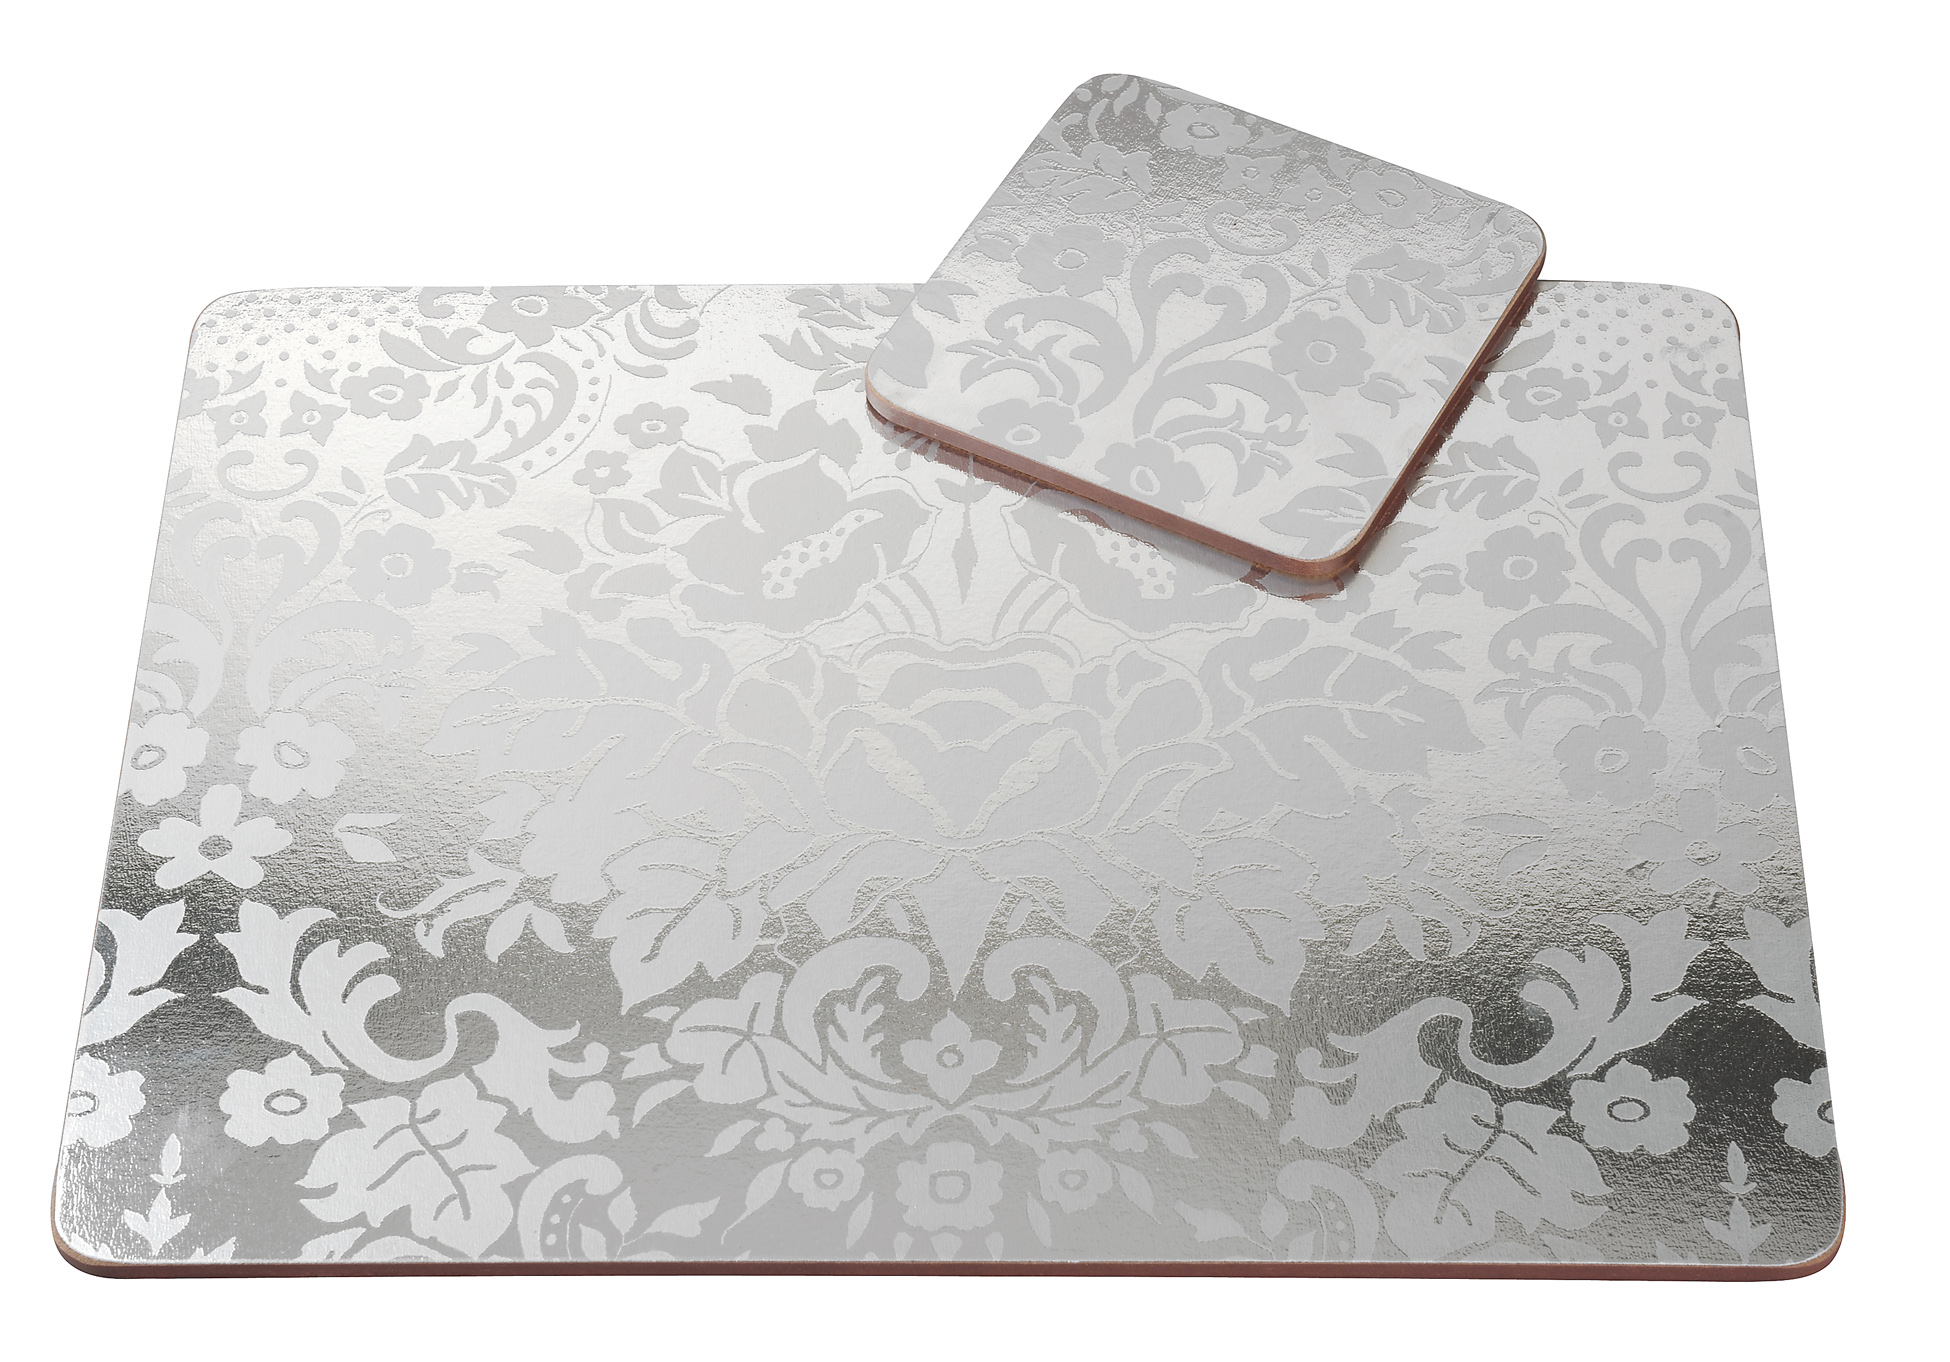 Pimpernel 4 X Damask Silver Placemats Coasters